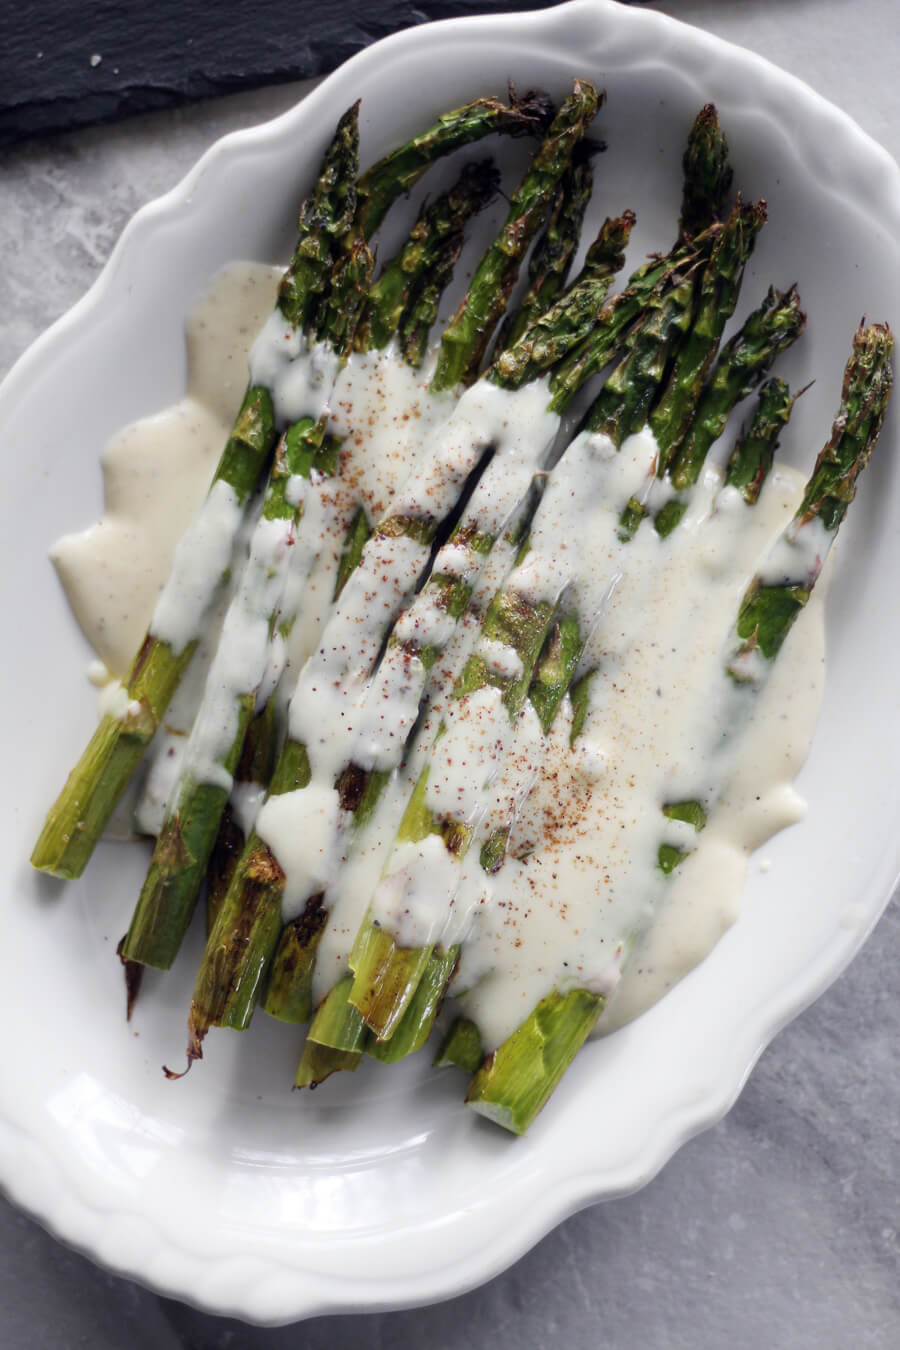 A white platter of roasted asaparagus topped with white cheese sauce and sprinkled with nutmeg